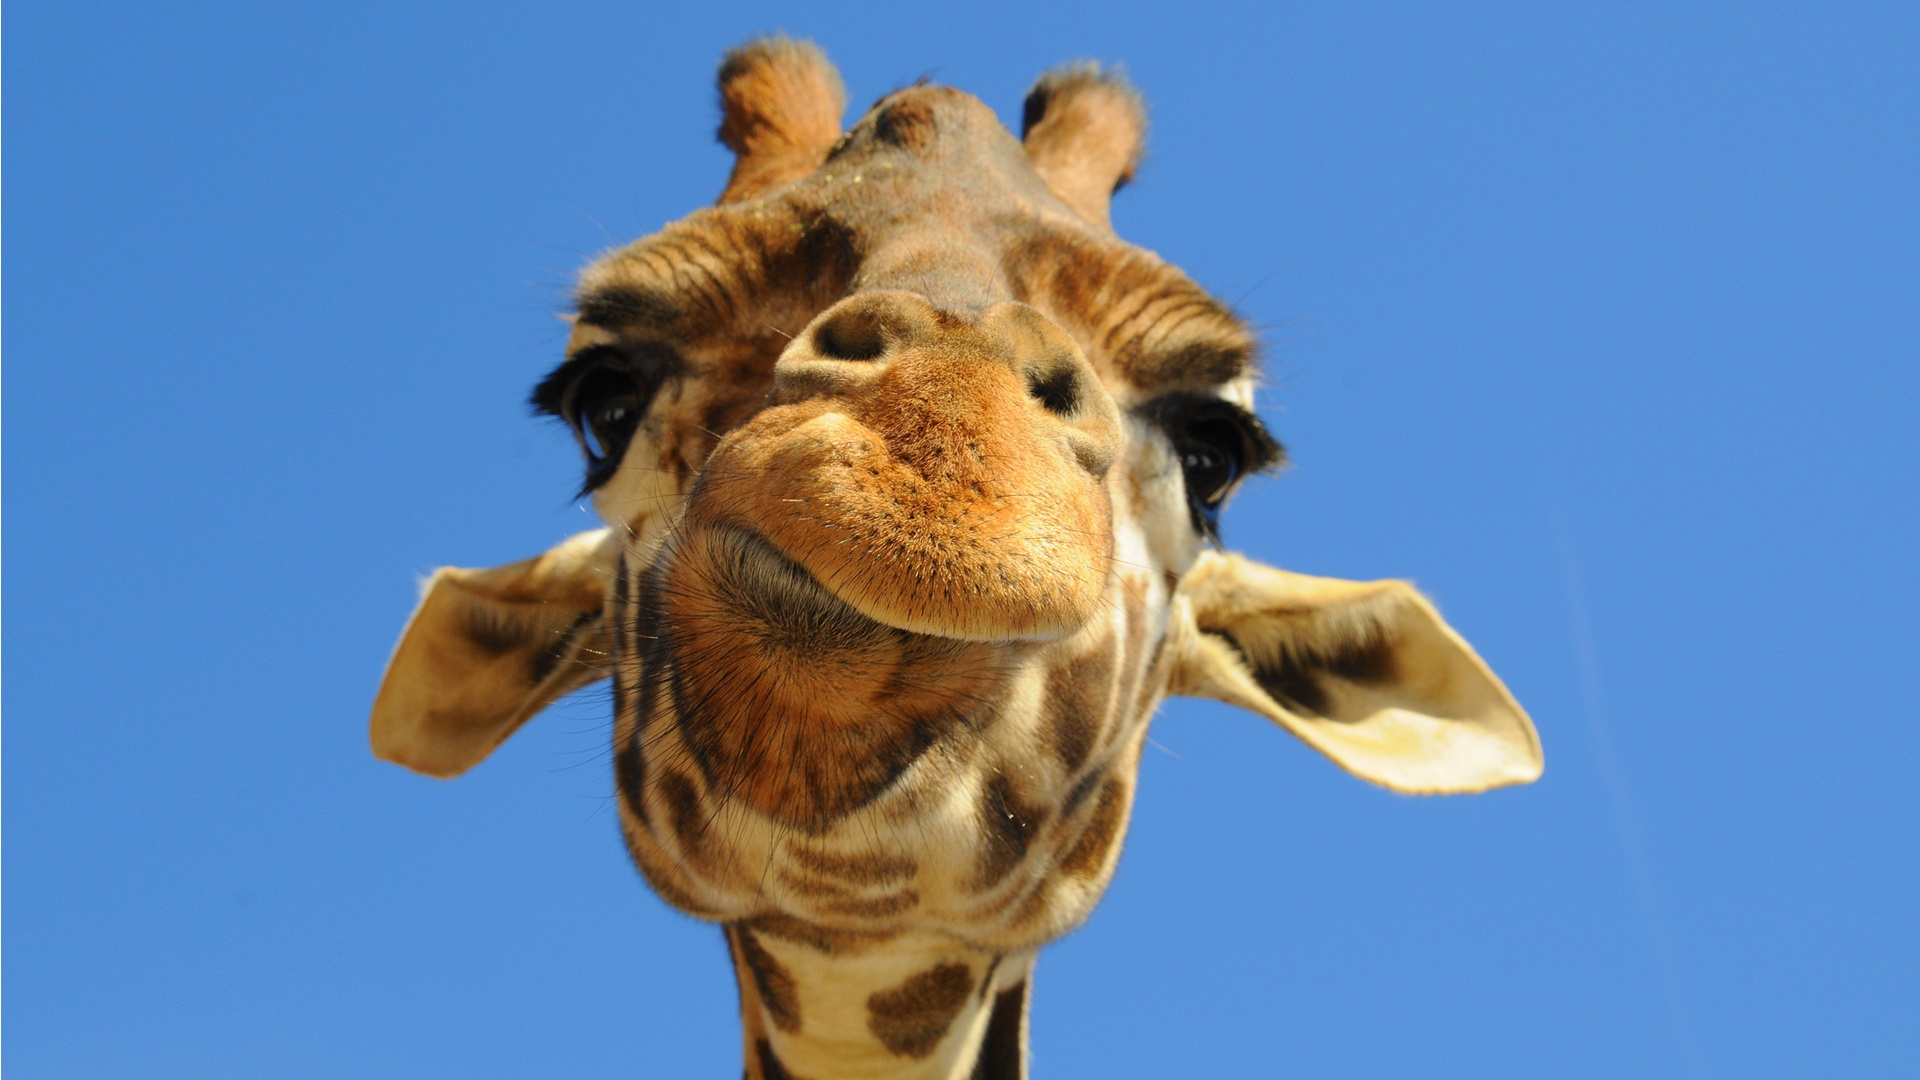 Disapproving Giraffe Wallpapers